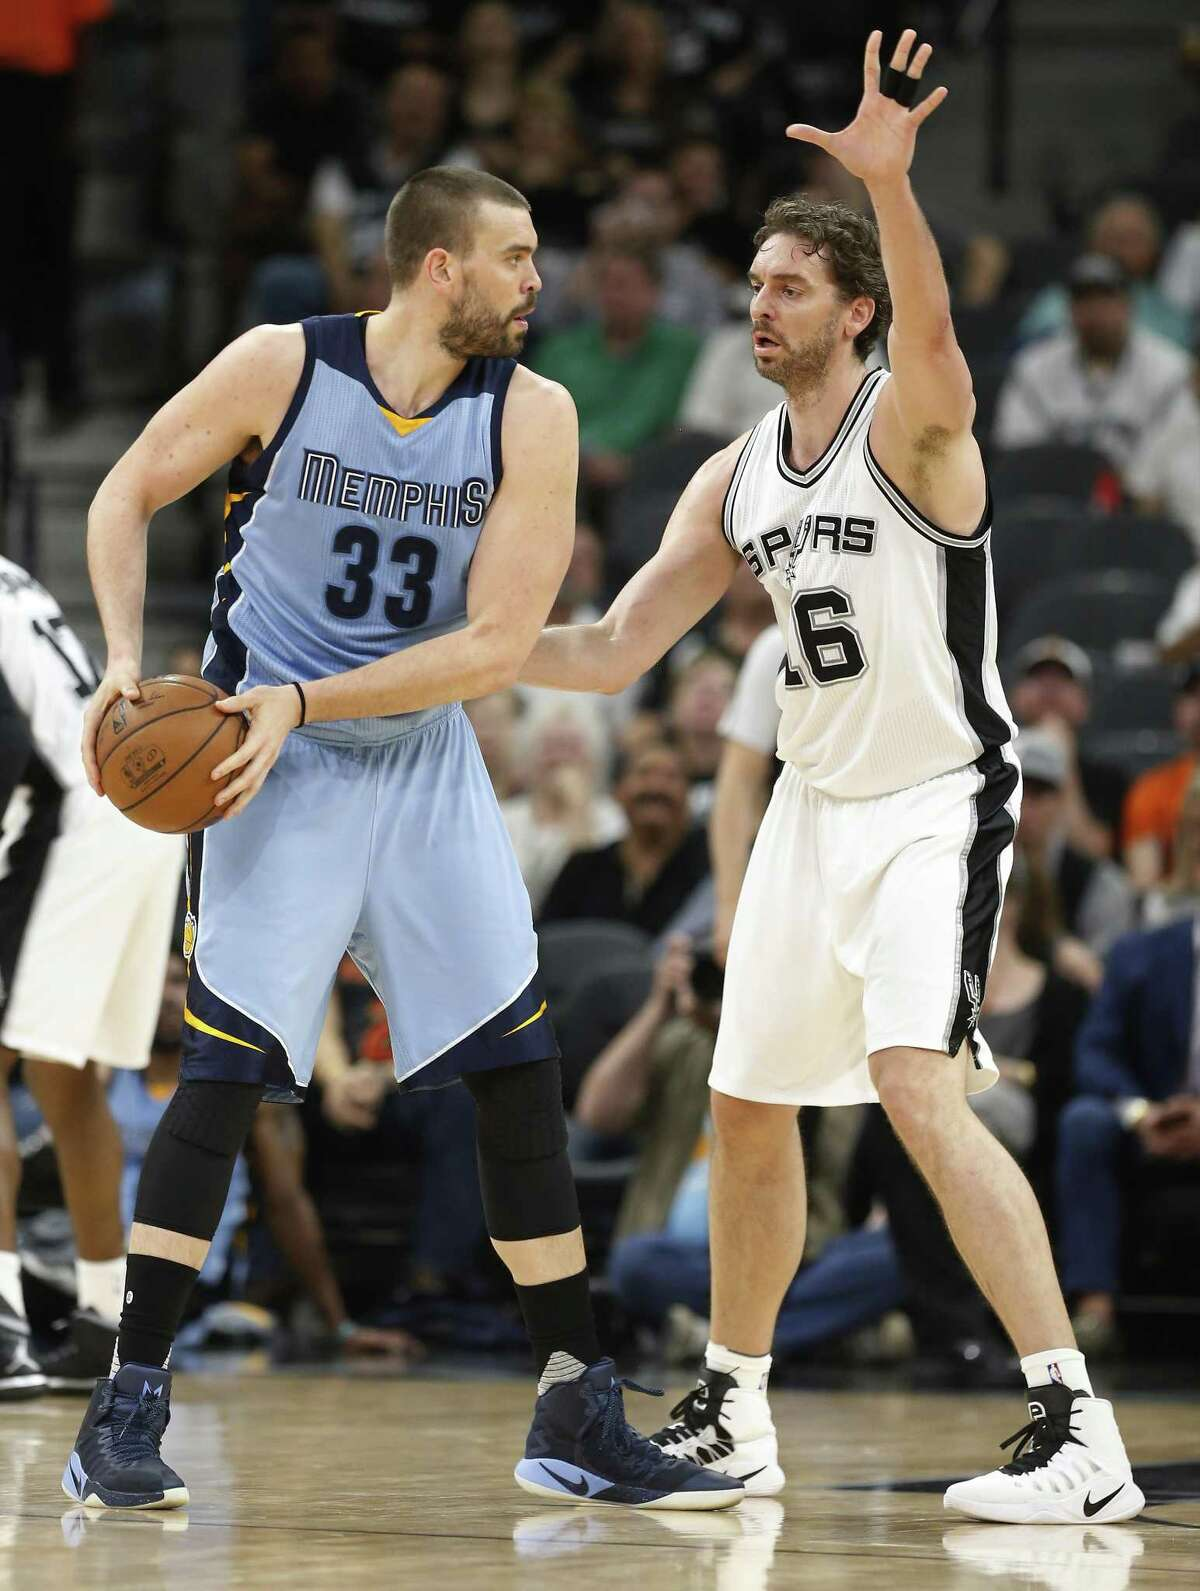 Spurs' Pau Gasol (right) faces off against his brother, the Memphis Grizzlies' Marc Gasol, during their game at the AT&T Center on April 4, 2017.